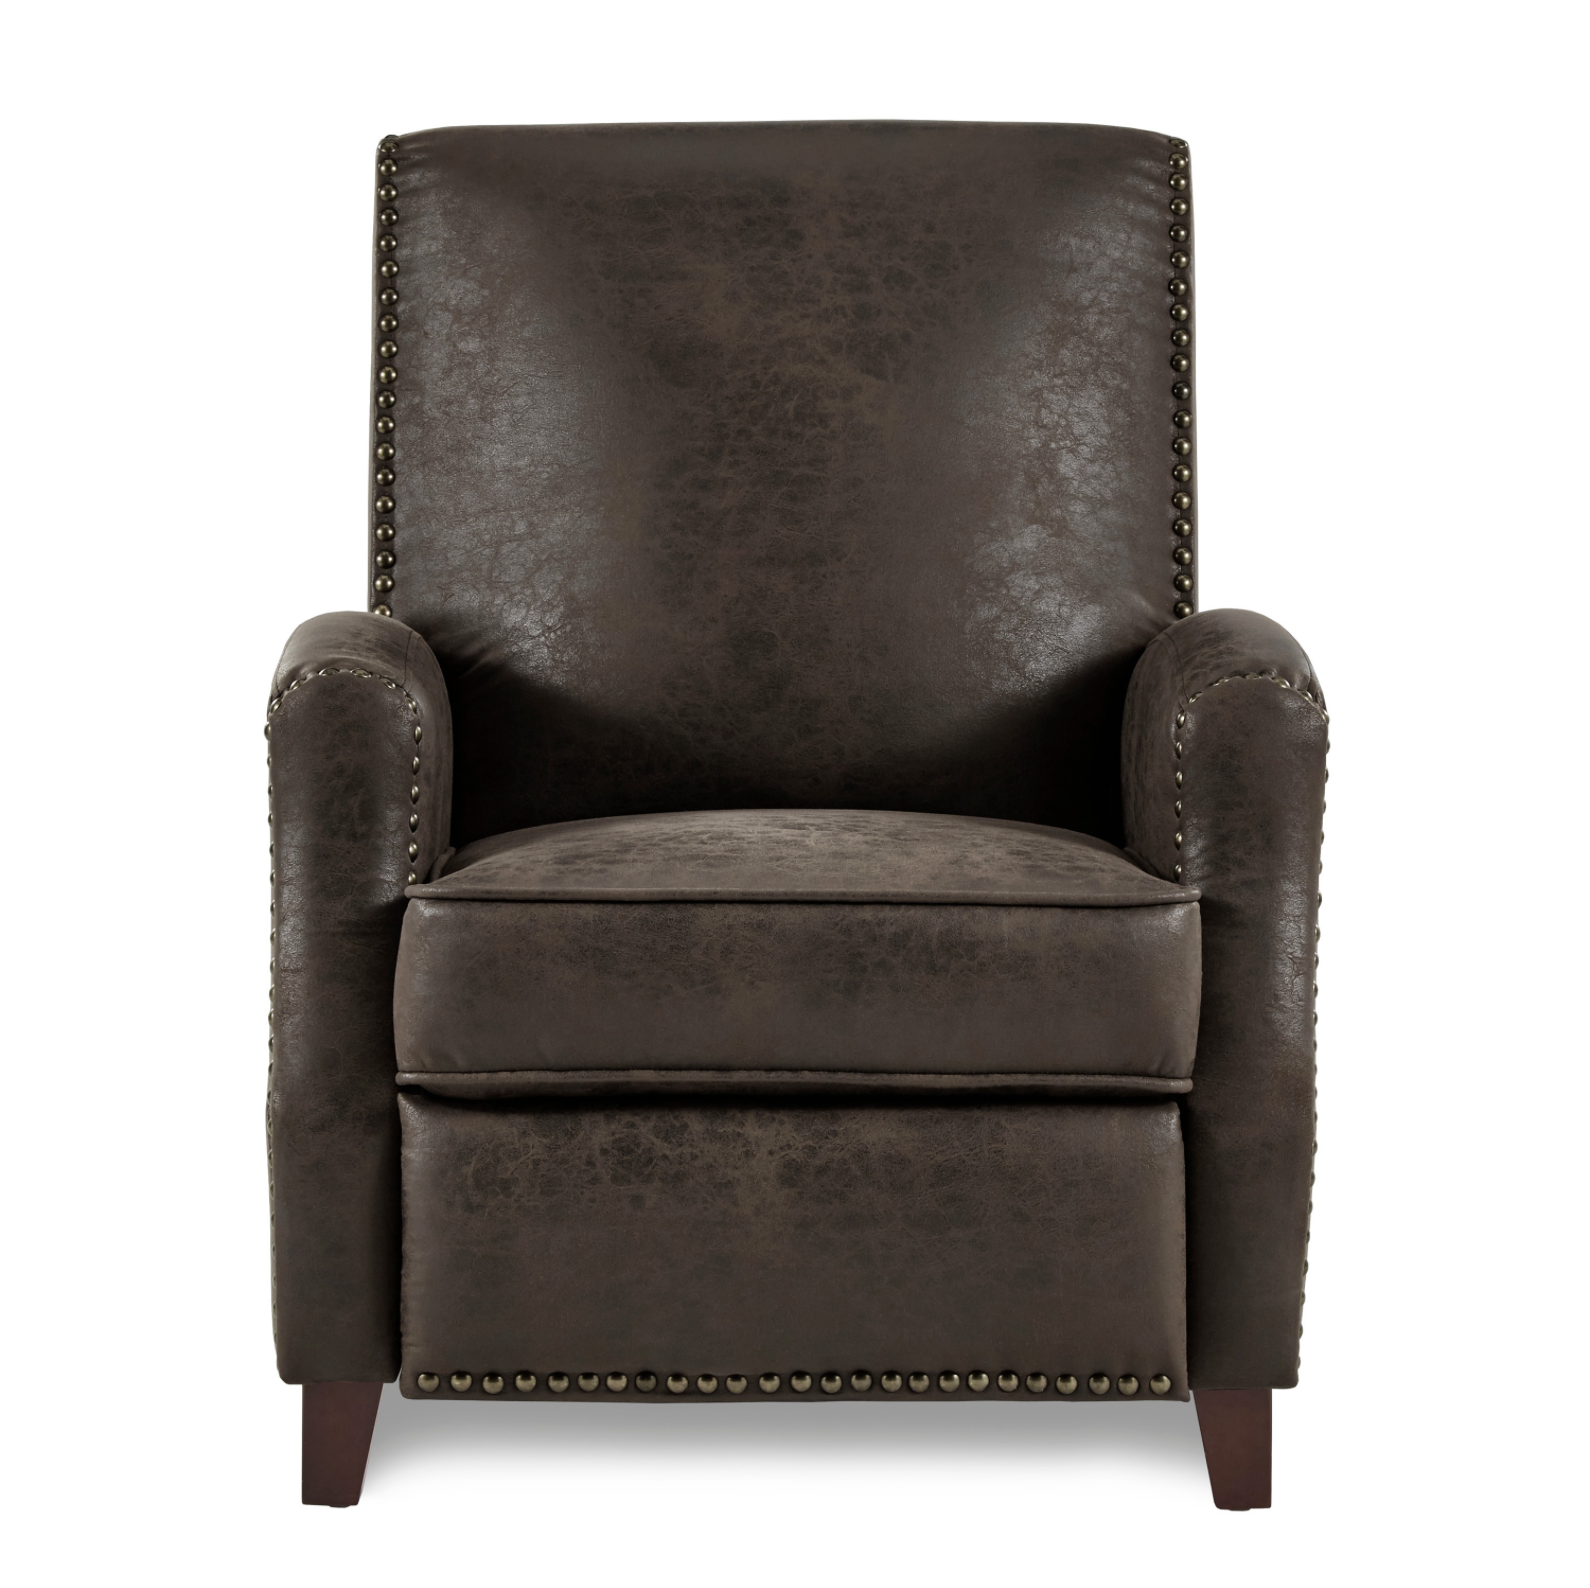 Walden Recliner Chair Night, day furniture, Chair, Chair